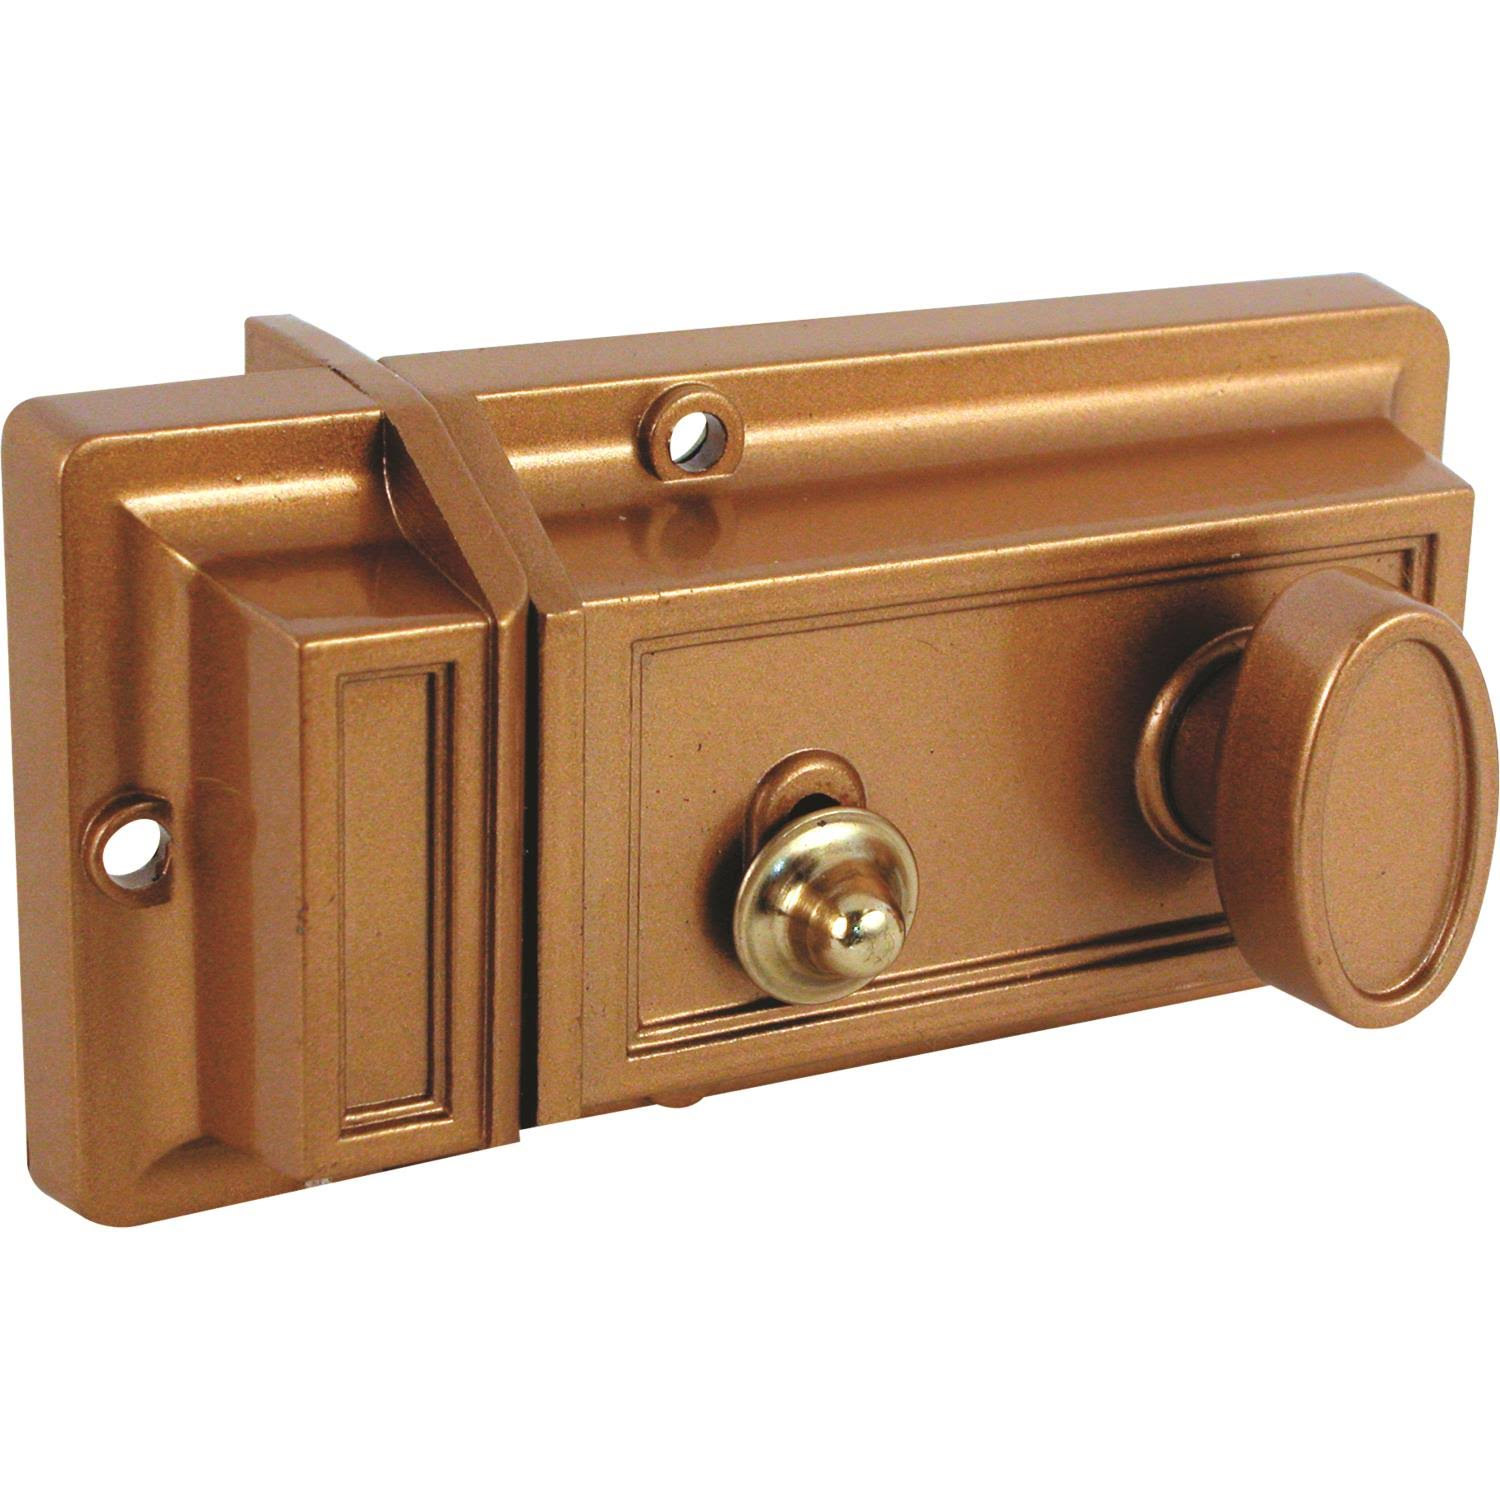 Prime Line Single Cylinder Locking Night Latch - Brass